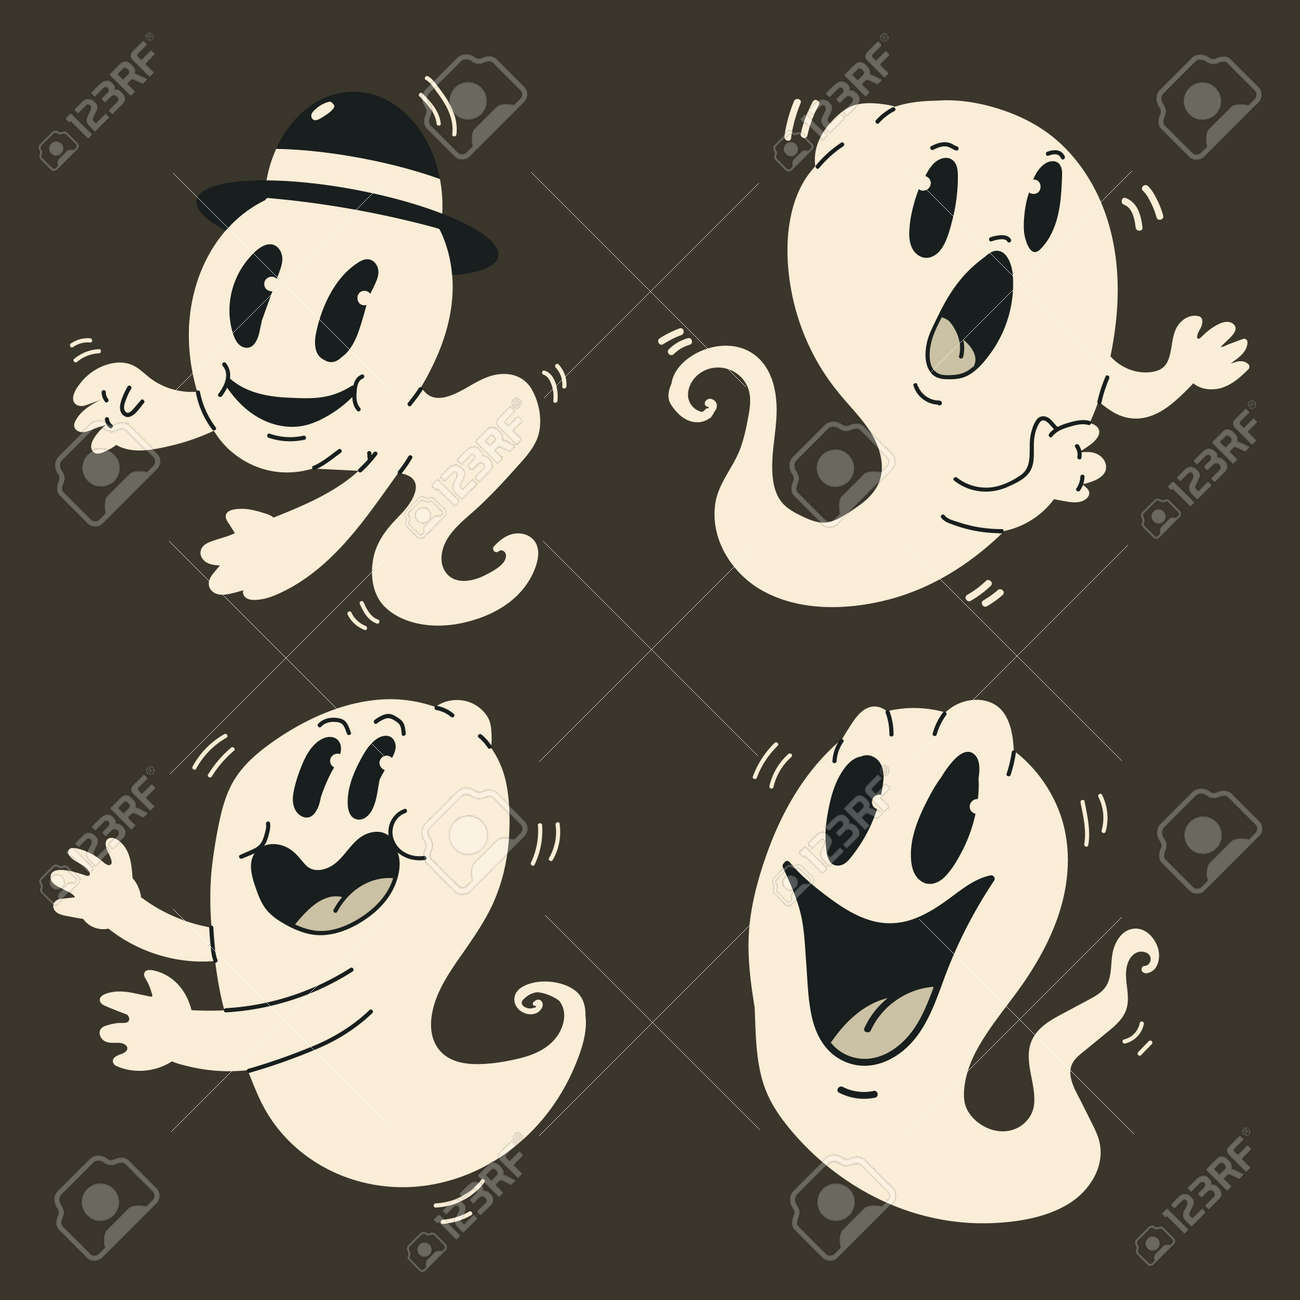 Cute cartoon ghosts vector set. Halloween funny vintage character monster isolated on background. - 173241346